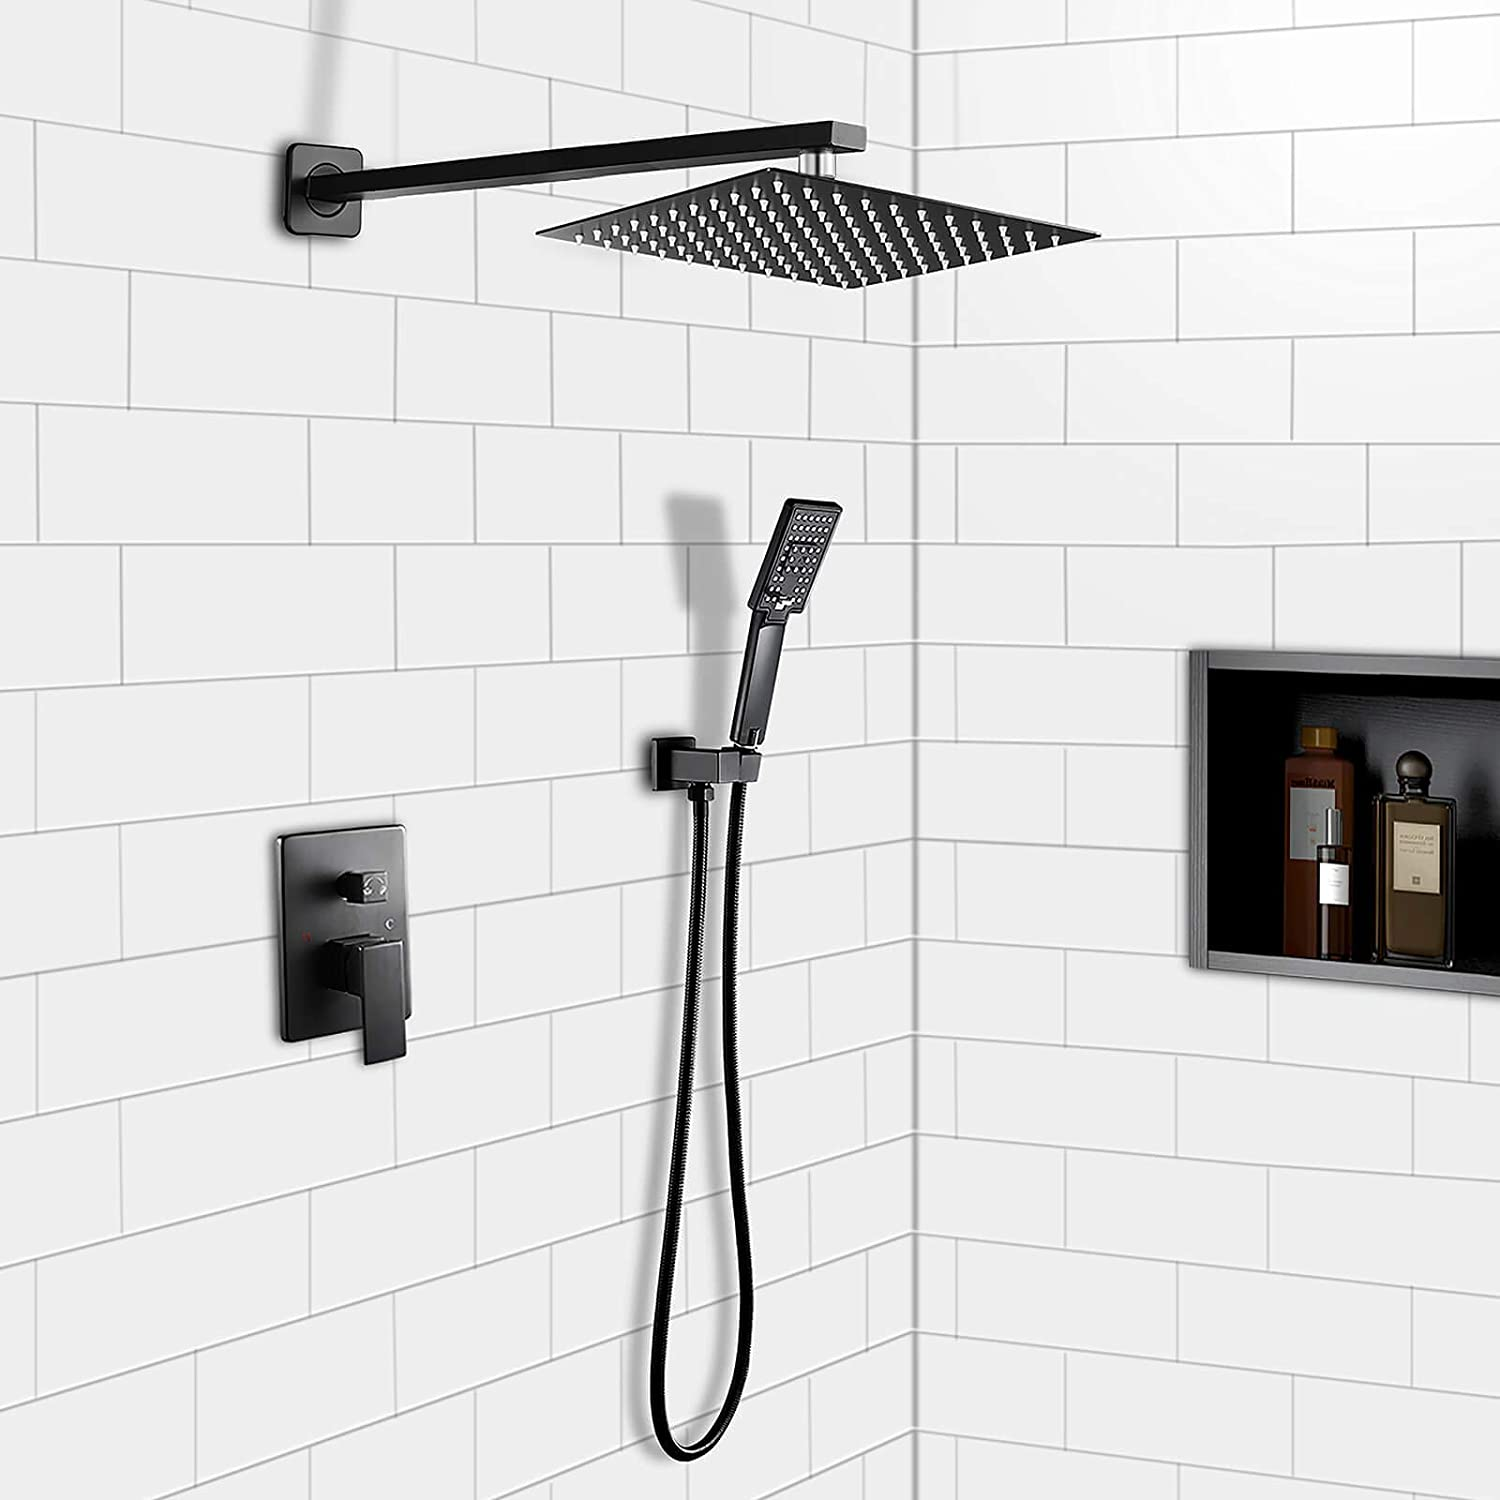 ROVOGO Bathroom Rain Mixer Shower Combo Set, Wall Mounted Rainfall Shower  Head System with Handheld Shower, Brass Rough in Diverter Valve and Trim  Kit ...